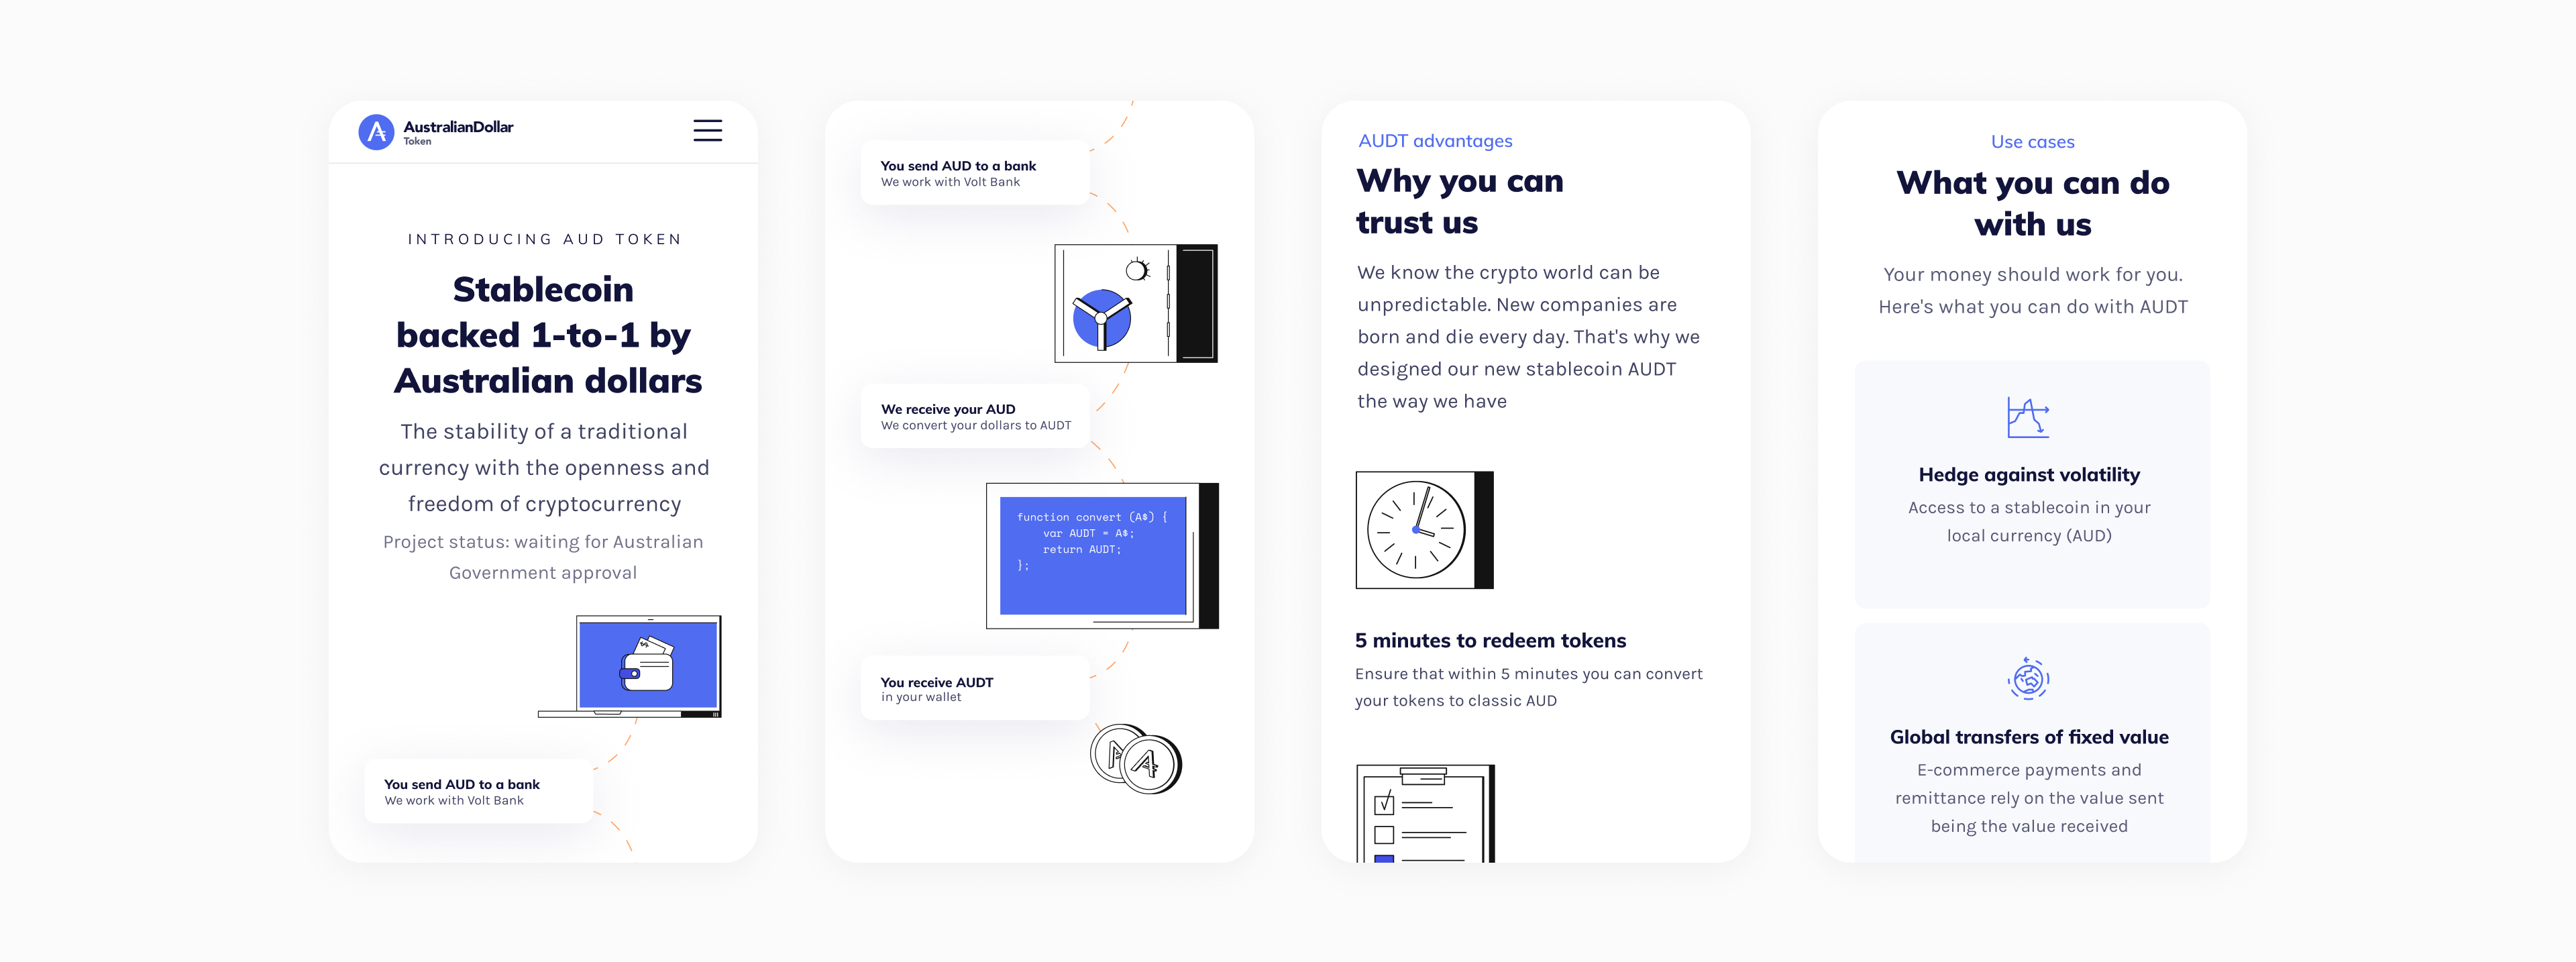 AUDT website for mobile by Embacy